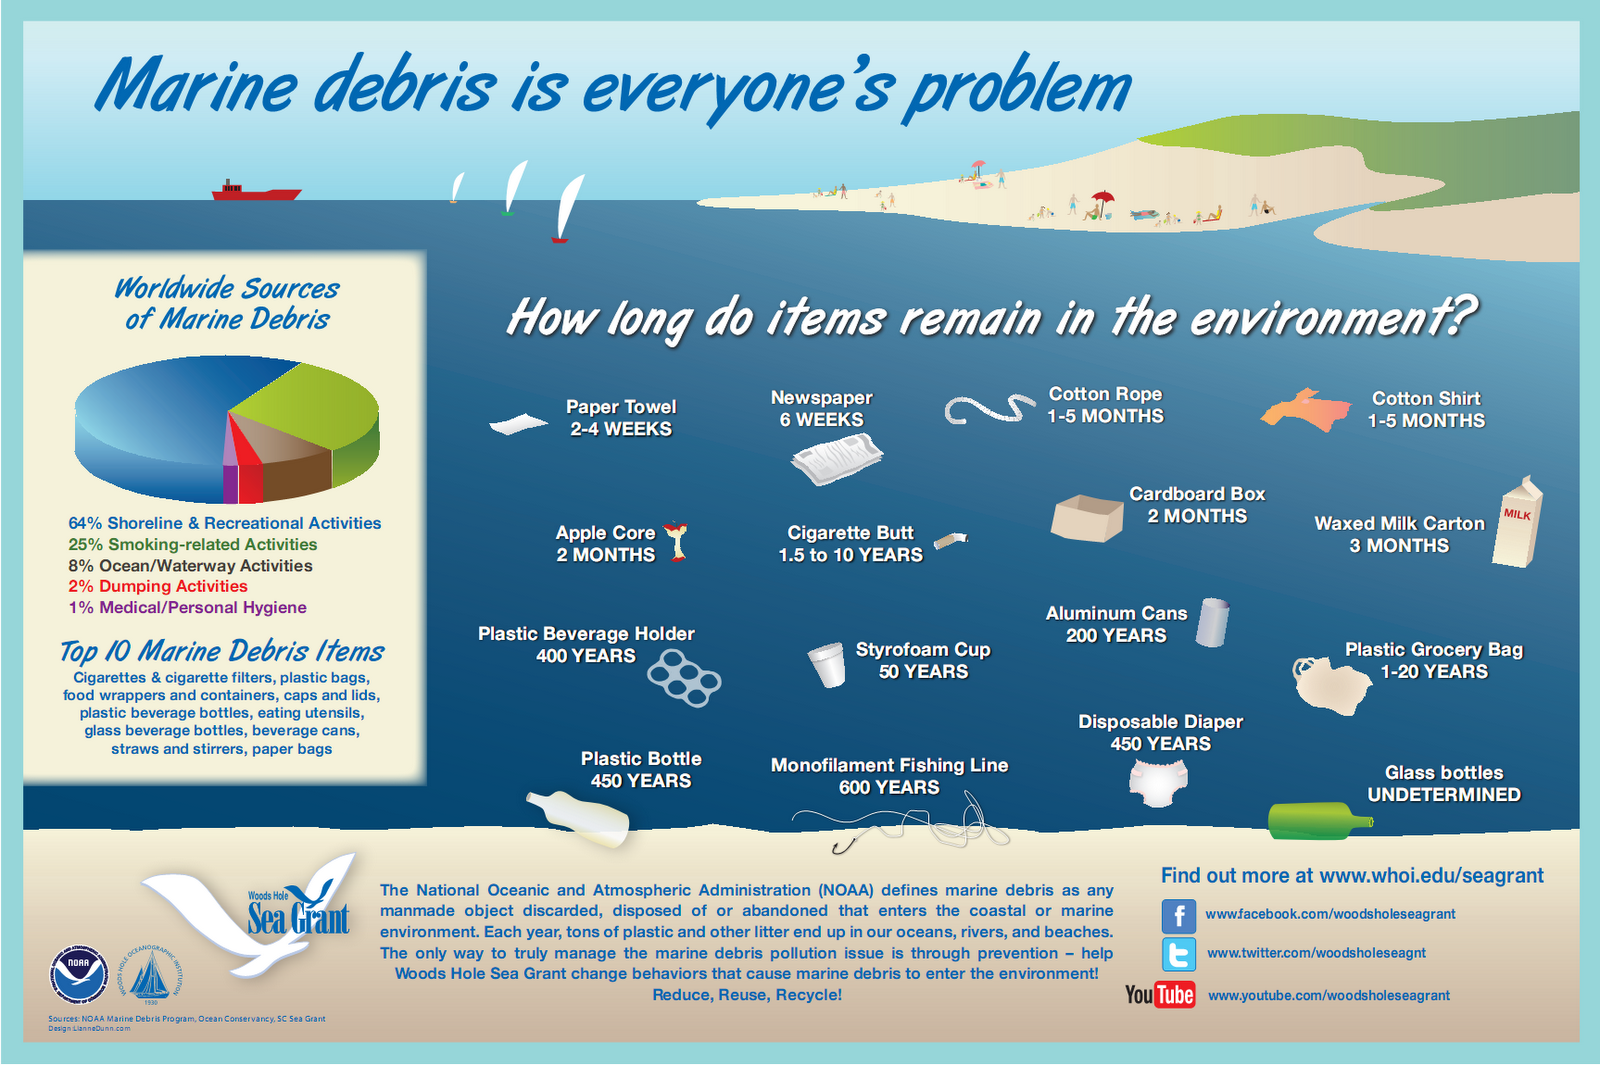 marine debris is everyone's problem infographic.png